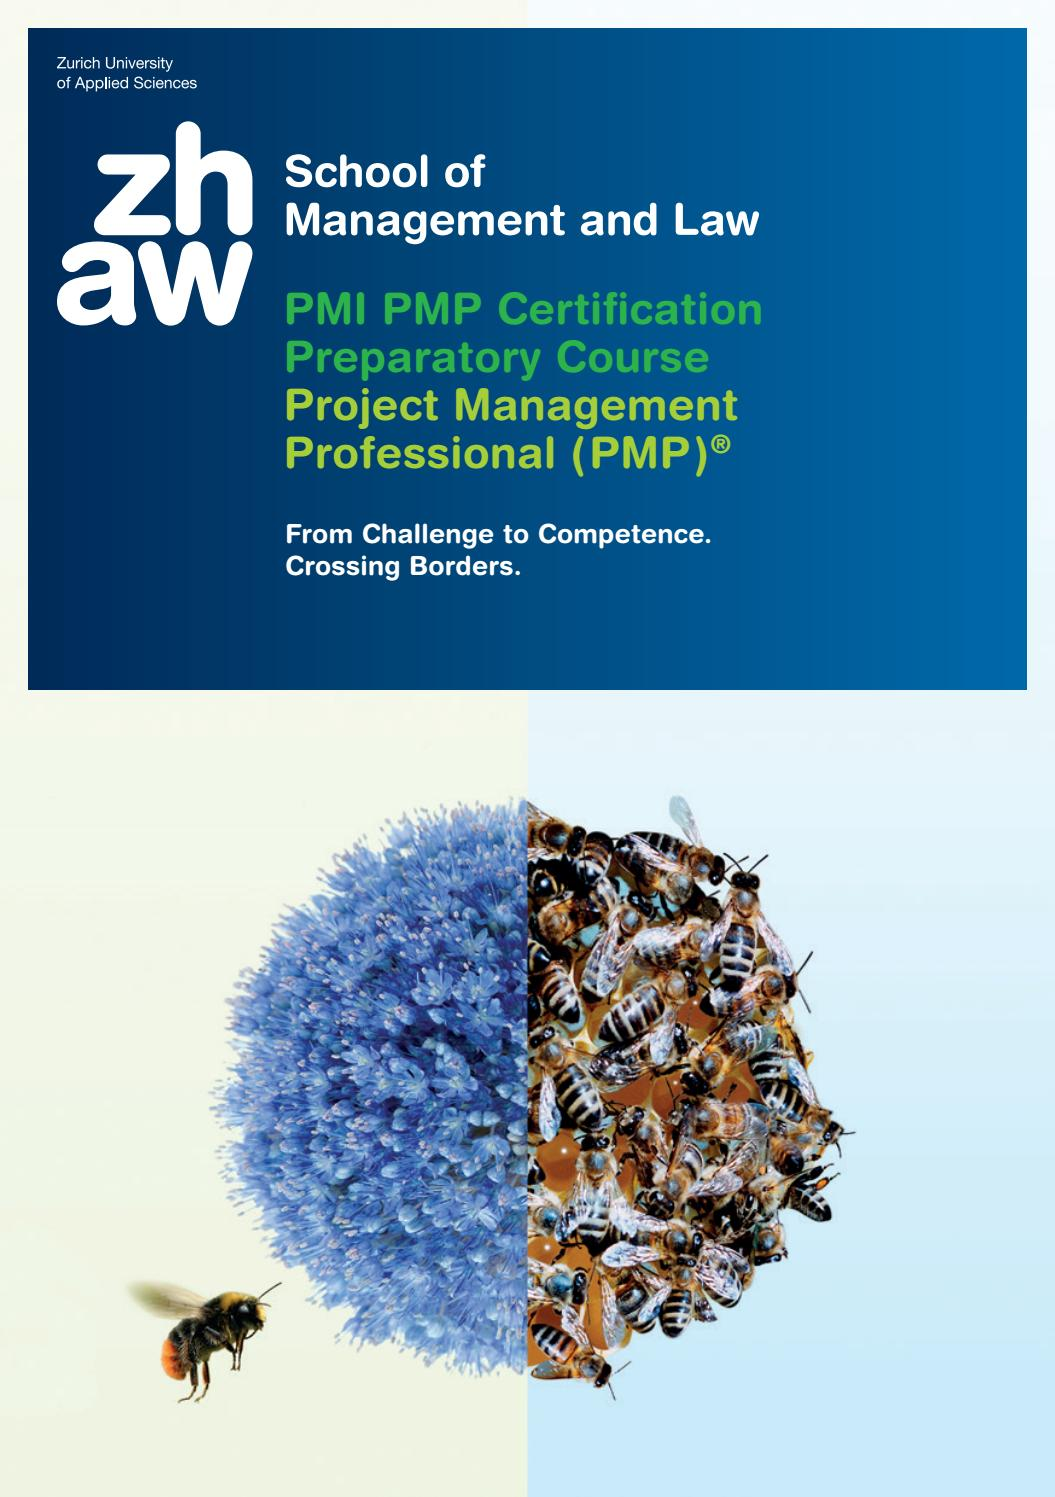 Pmi pmp certification preparatory course by zhaw school of pmi pmp certification preparatory course by zhaw school of management and law issuu 1betcityfo Images